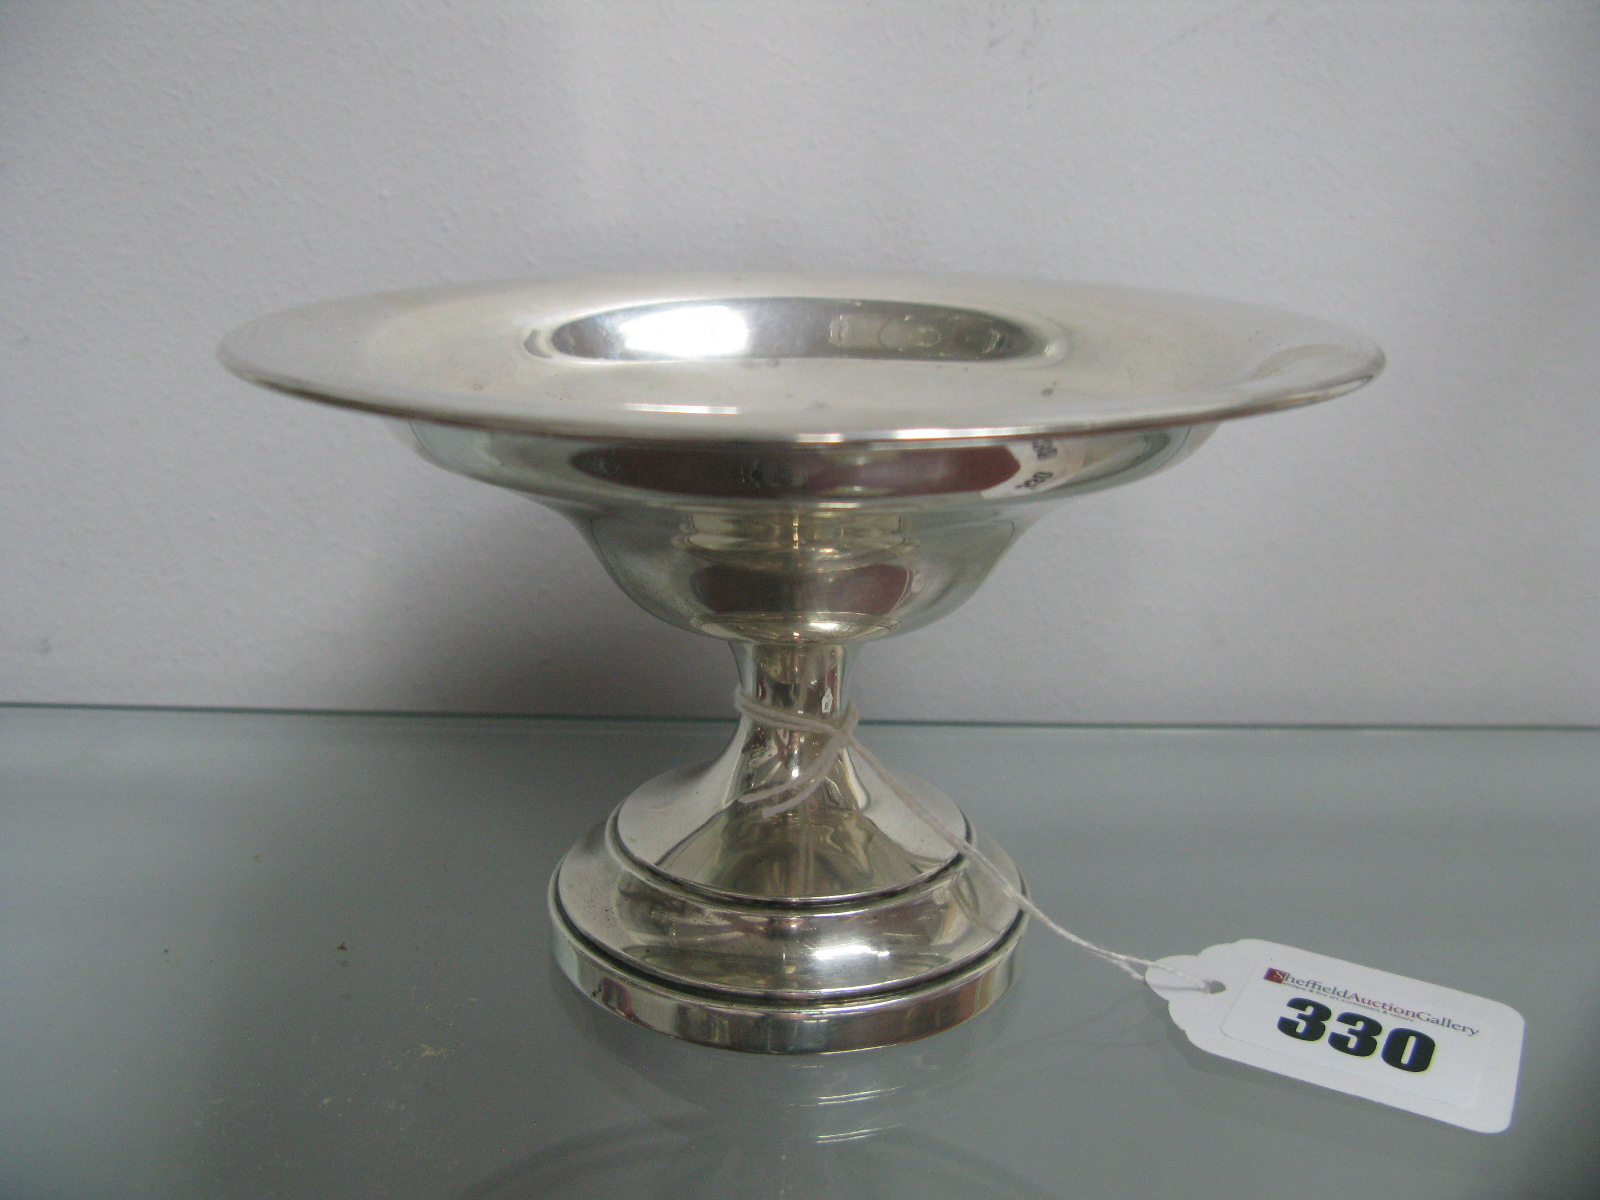 Lot 330 - A Hallmarked Silver Pedestal Dish, (base weighted), 14cm diameter.